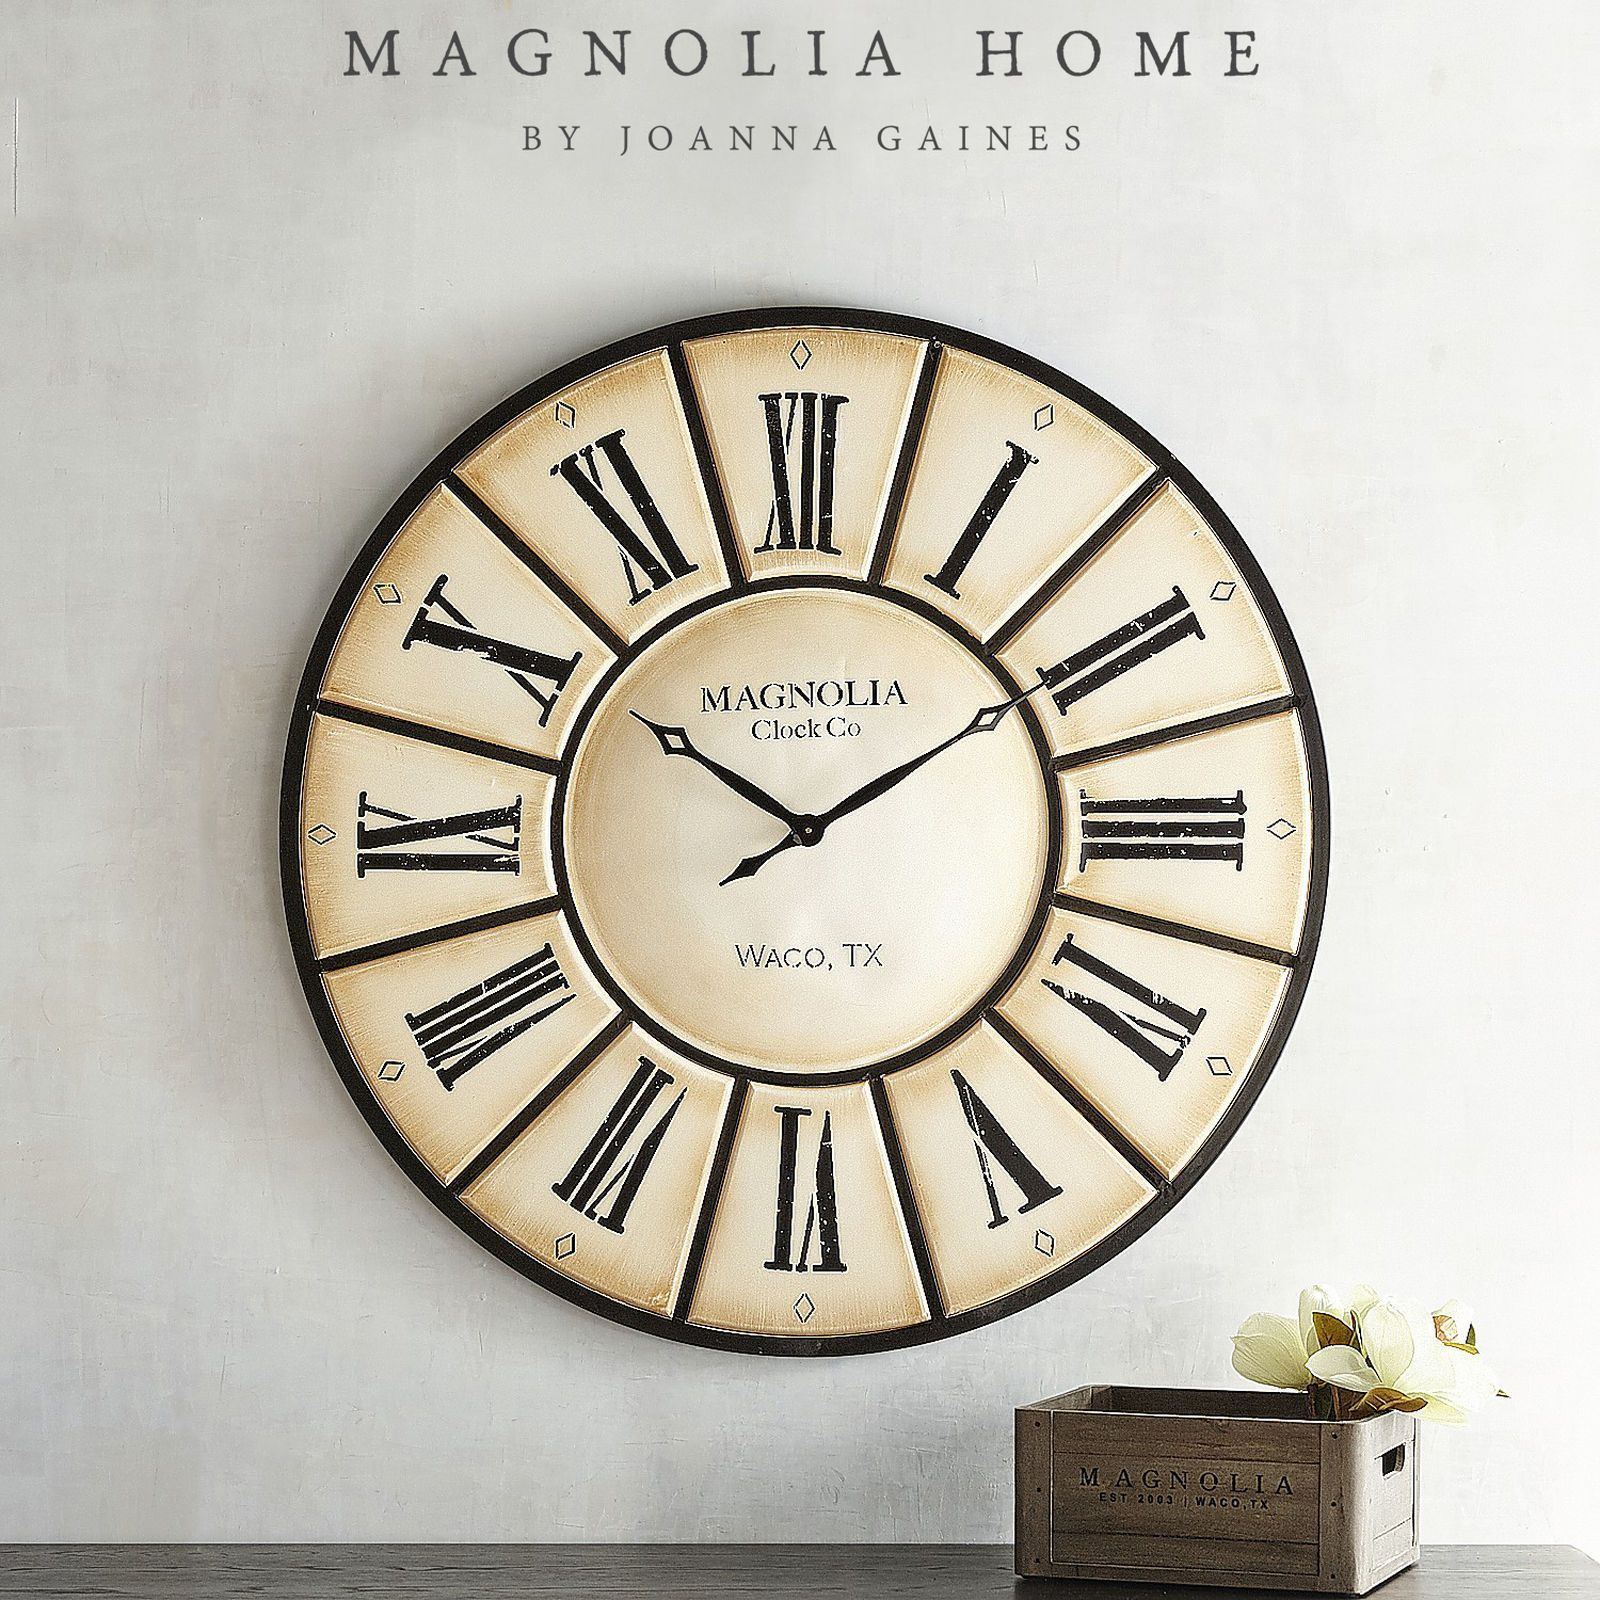 Magnolia Home Village Wall Clock - Pier 1 Imports